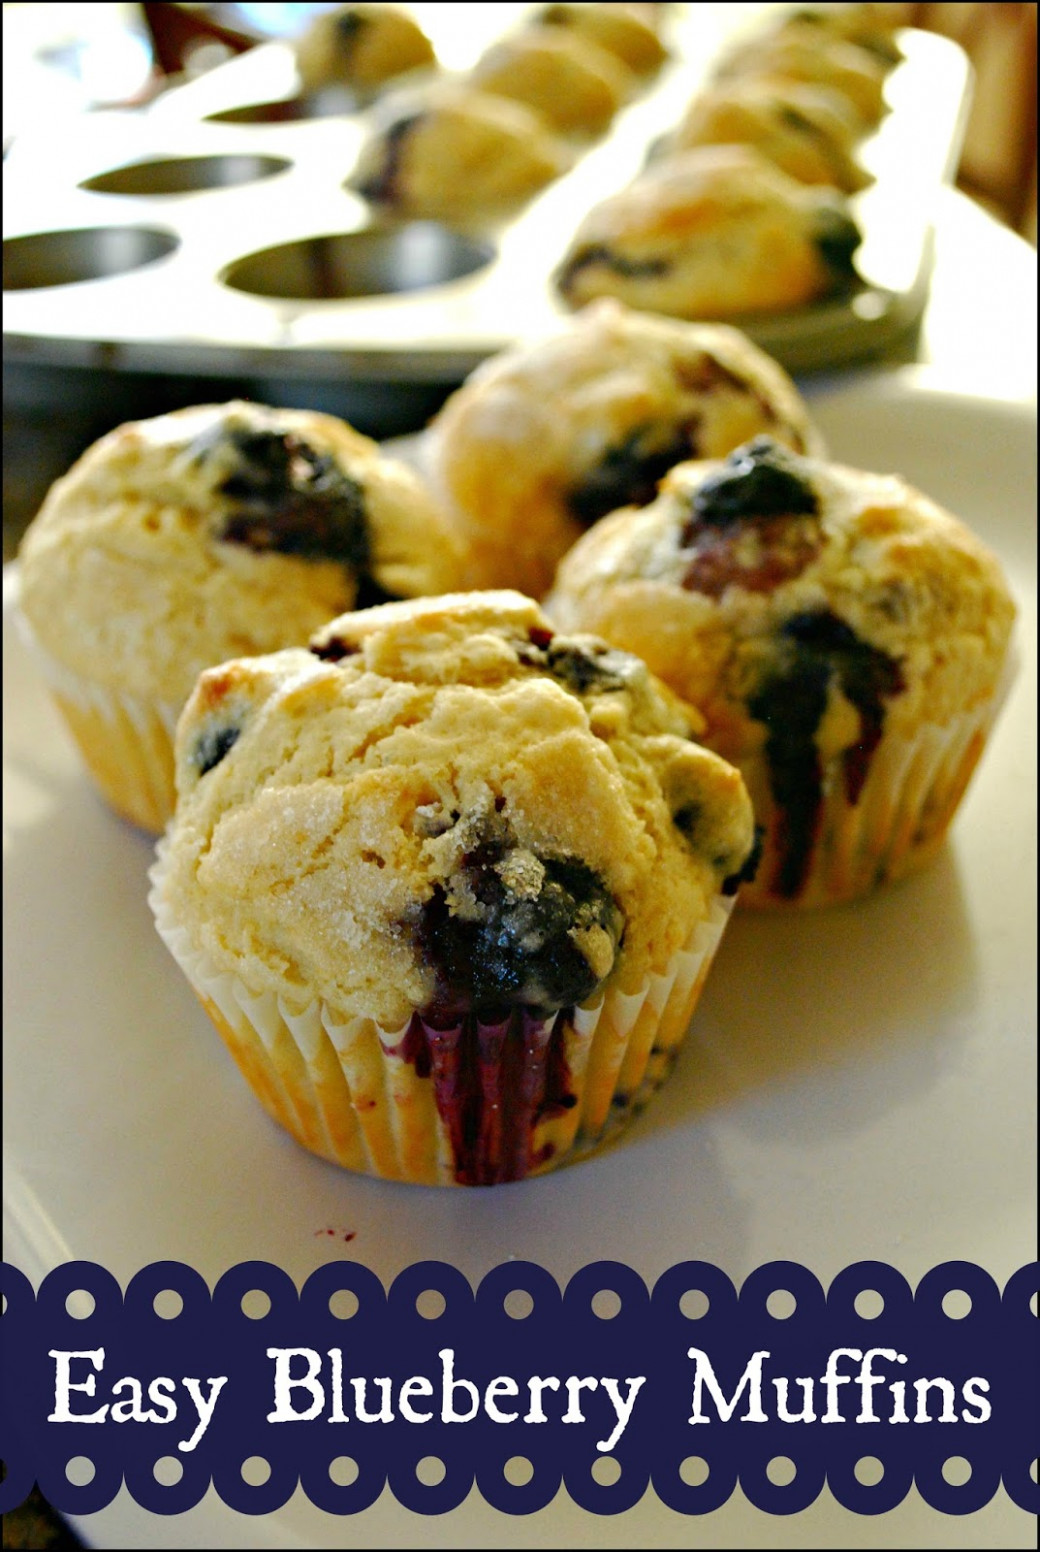 Easy Blueberry Muffins - Food Fun Friday - Mess for Less